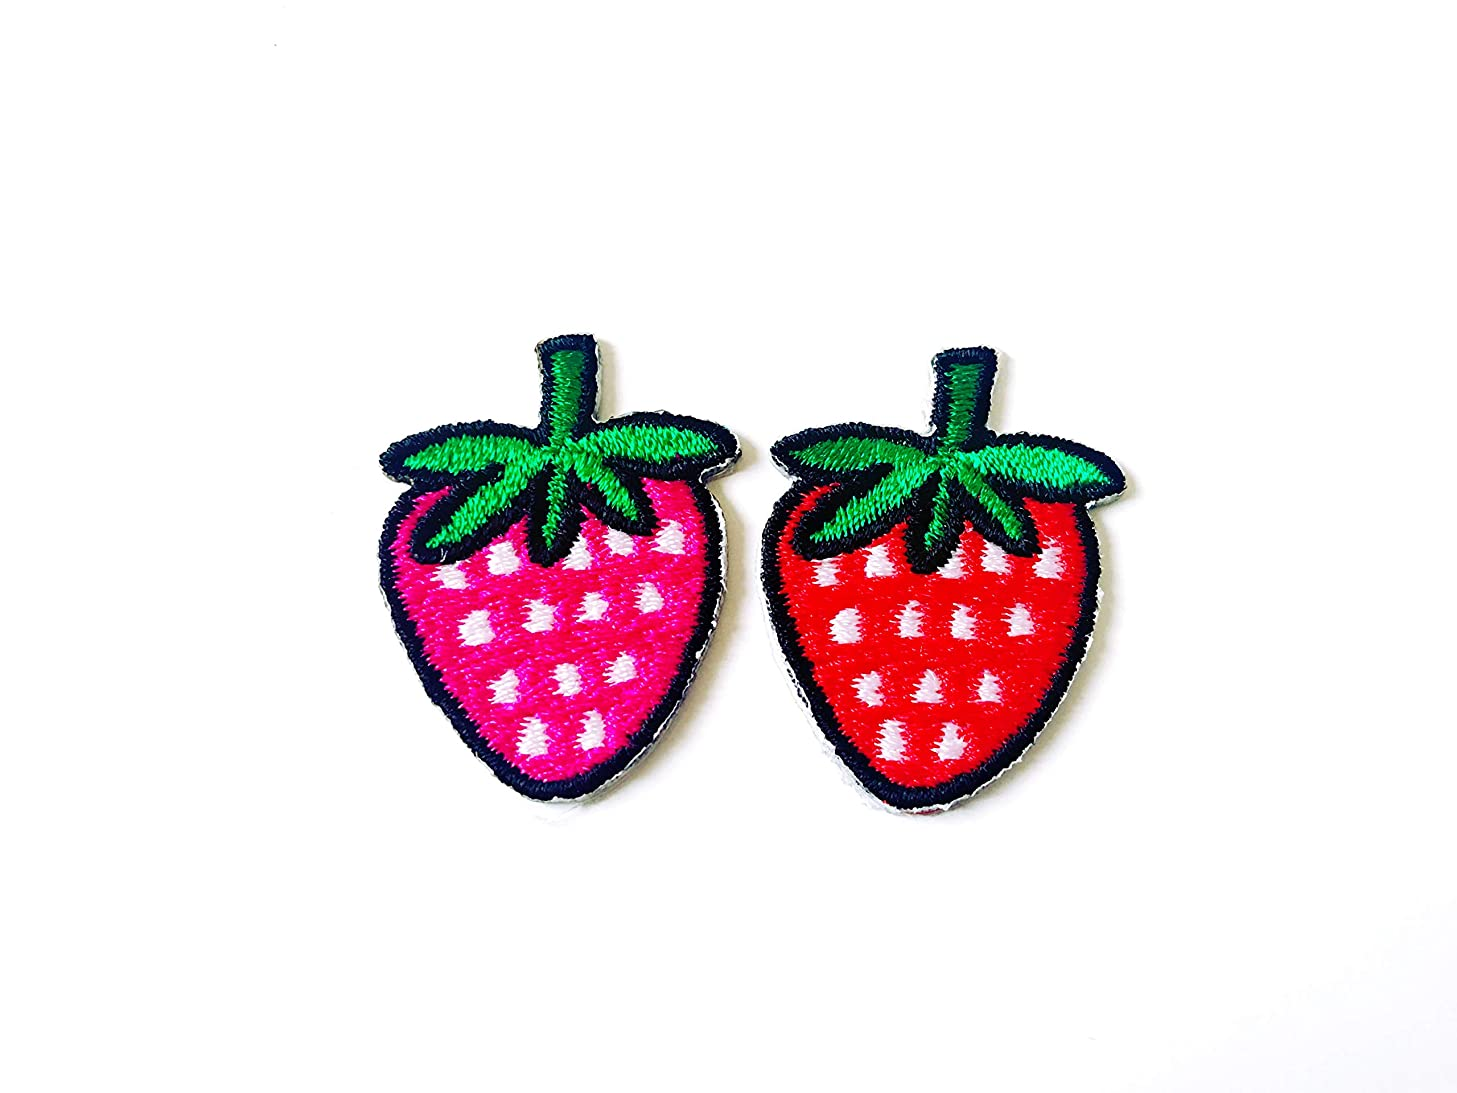 Tyga_Thai Brand Set 2 pcs. Mini Red Pink Strawberry Cute Fruit Jacket T-Shirt Sew Iron on Embroidered Applique Badge Sign Patch (Iron-Red-Pink-Strawberry-Fruit)